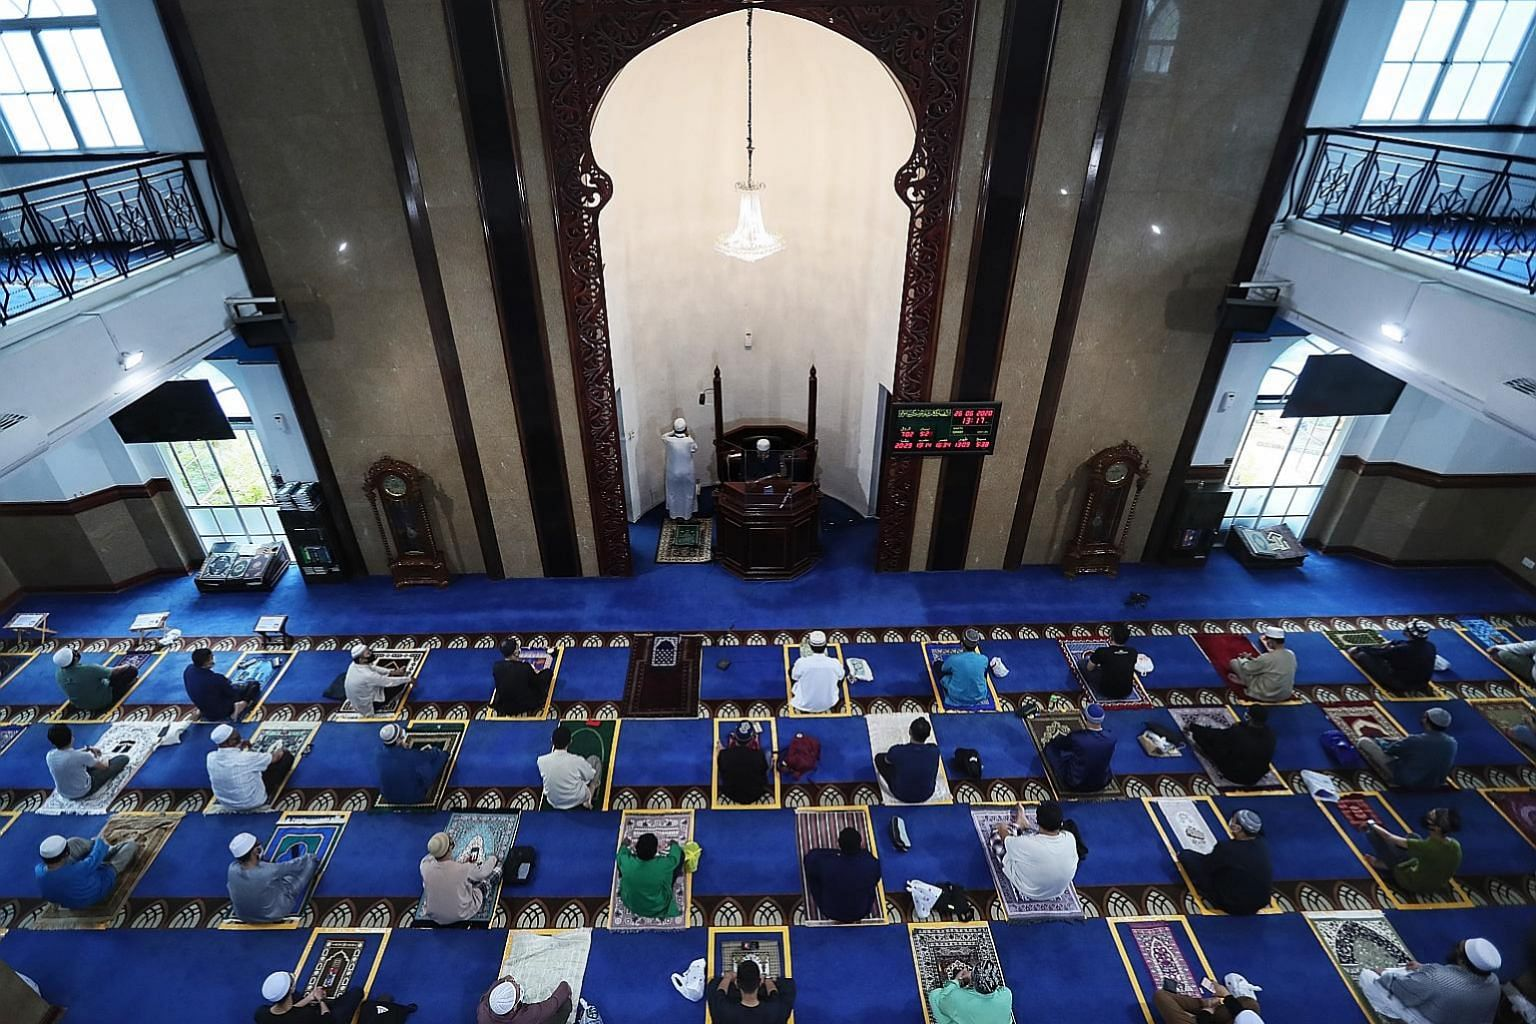 Ustaz Maaz Salim (top) leading congregants in prayer yesterday at Al-Istighfar Mosque (above), where afternoon prayers proceeded smoothly without any hiccups. People taking part in Friday congregational prayers at Al-Istighfar Mosque in Pasir Ris yes